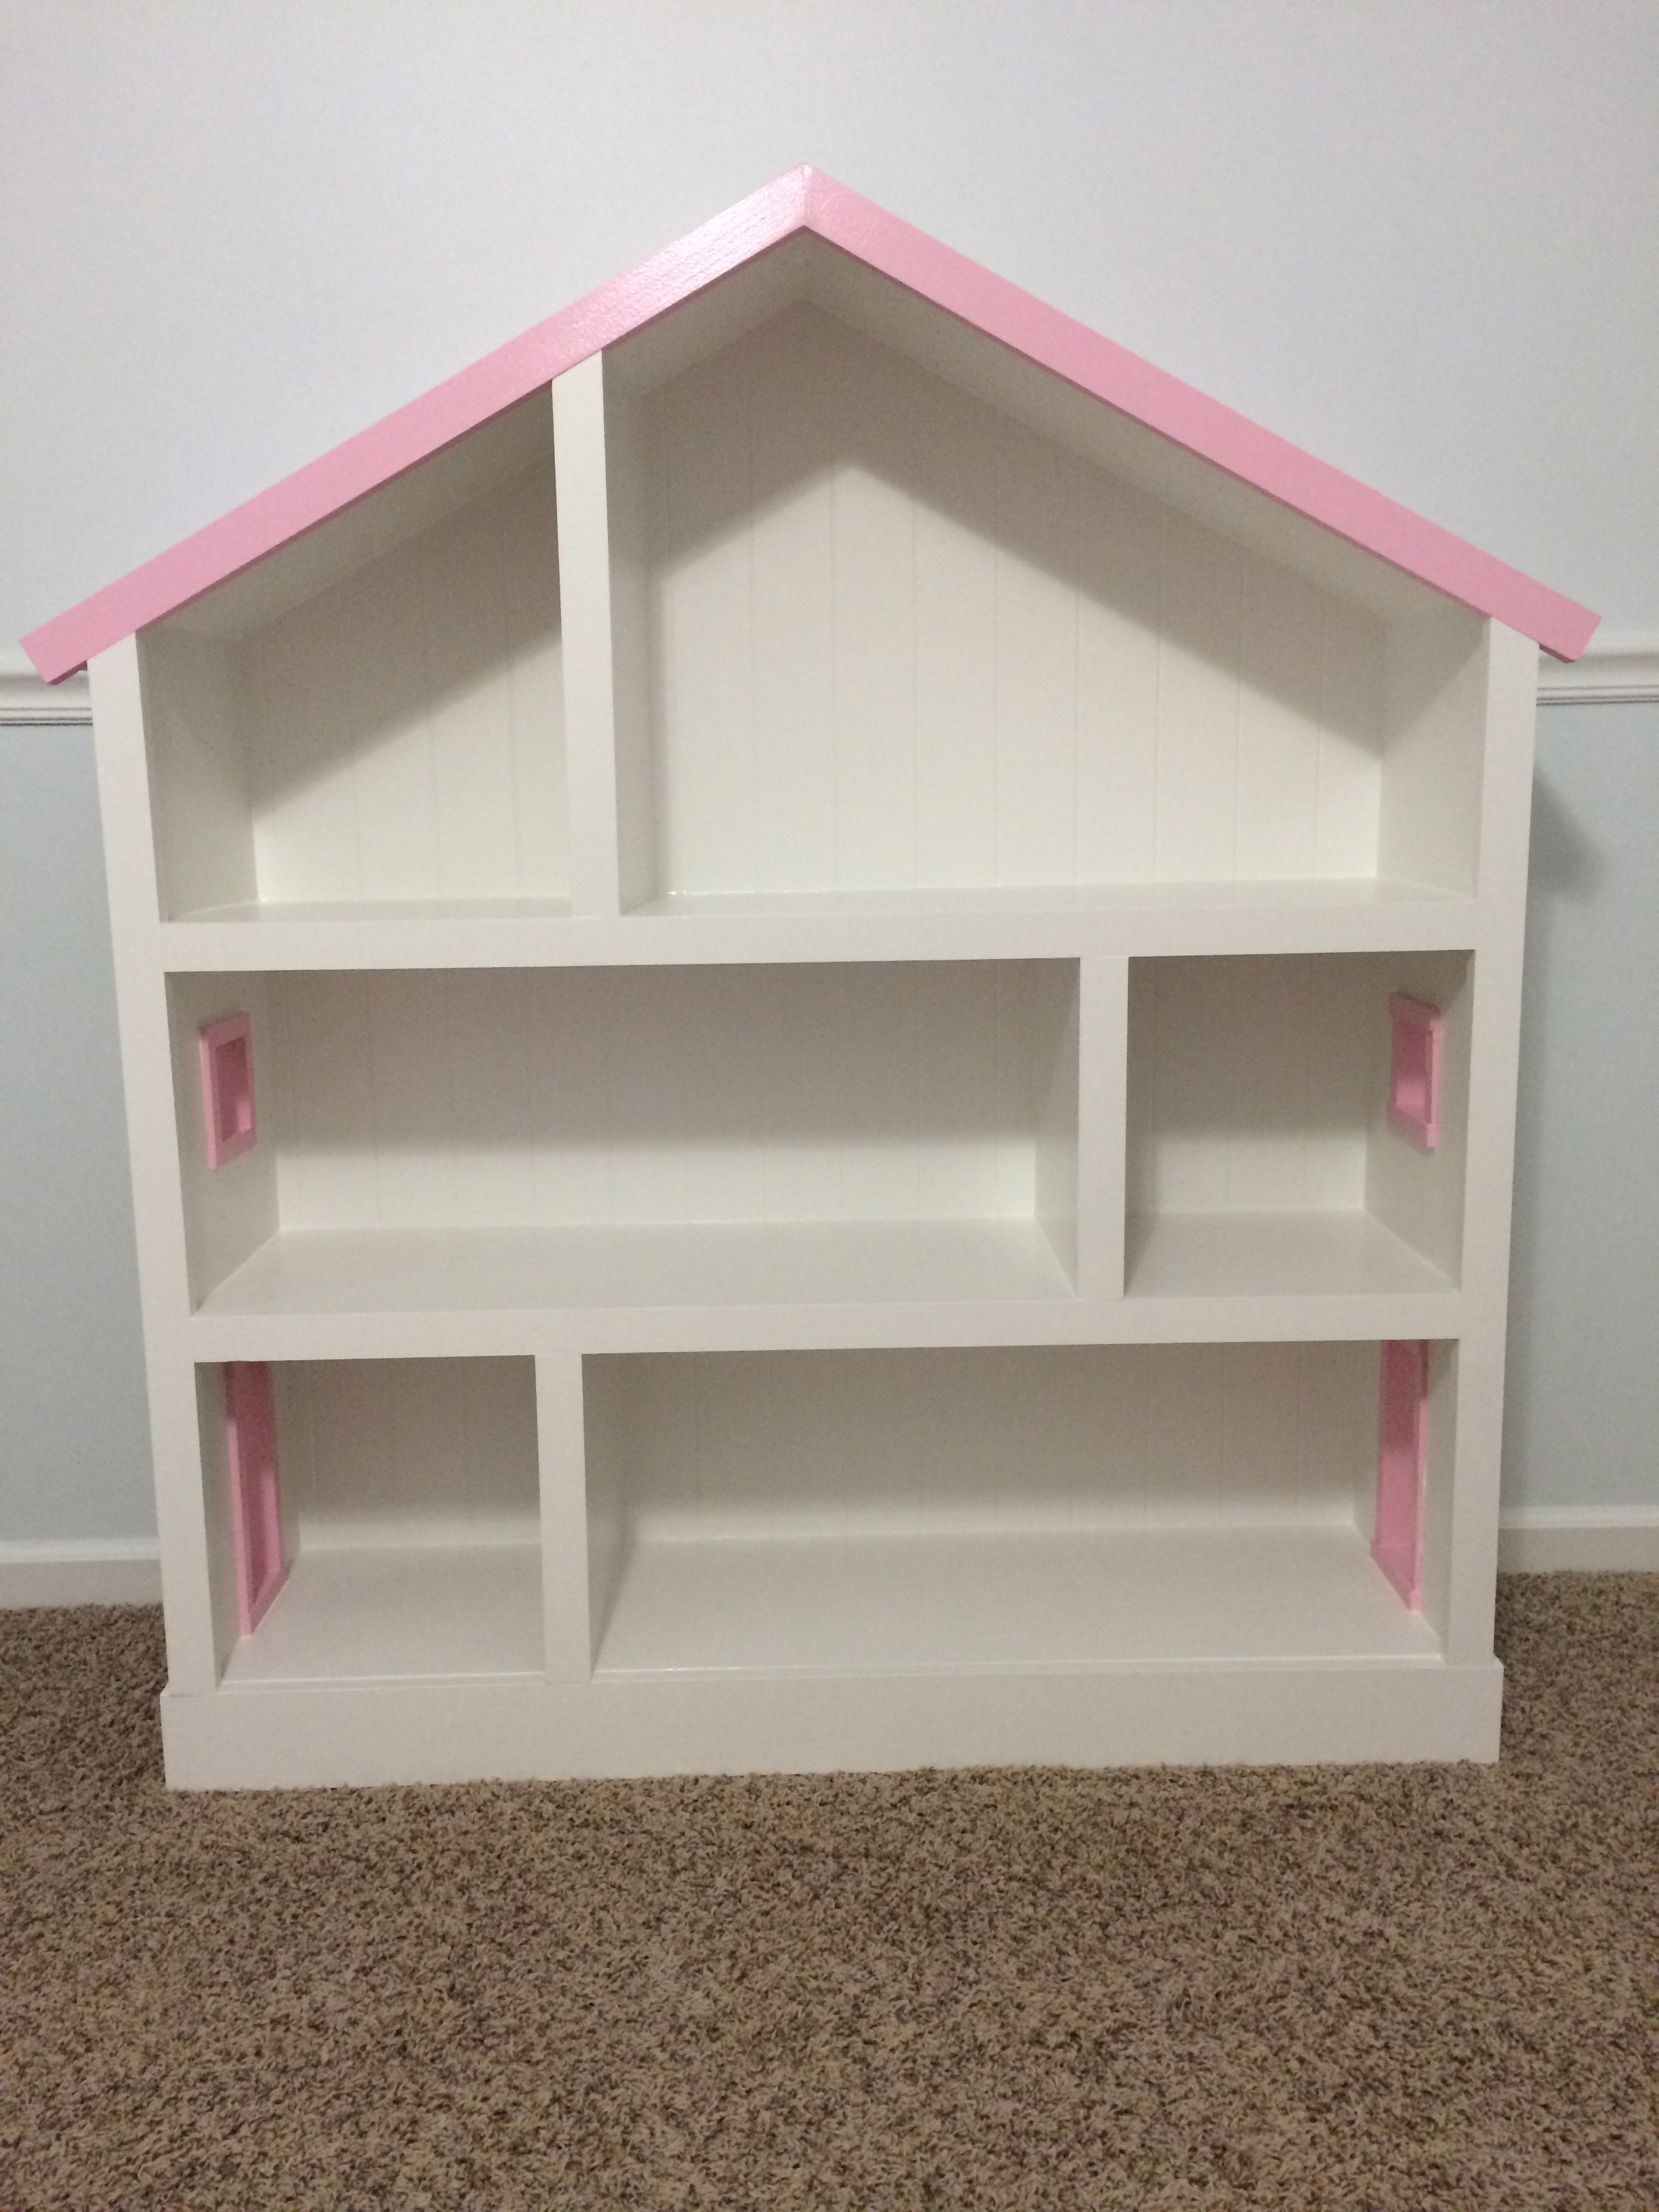 Best ideas about DIY Dollhouse Plans . Save or Pin 15 DIY Dollhouse Bookcase Plans Now.